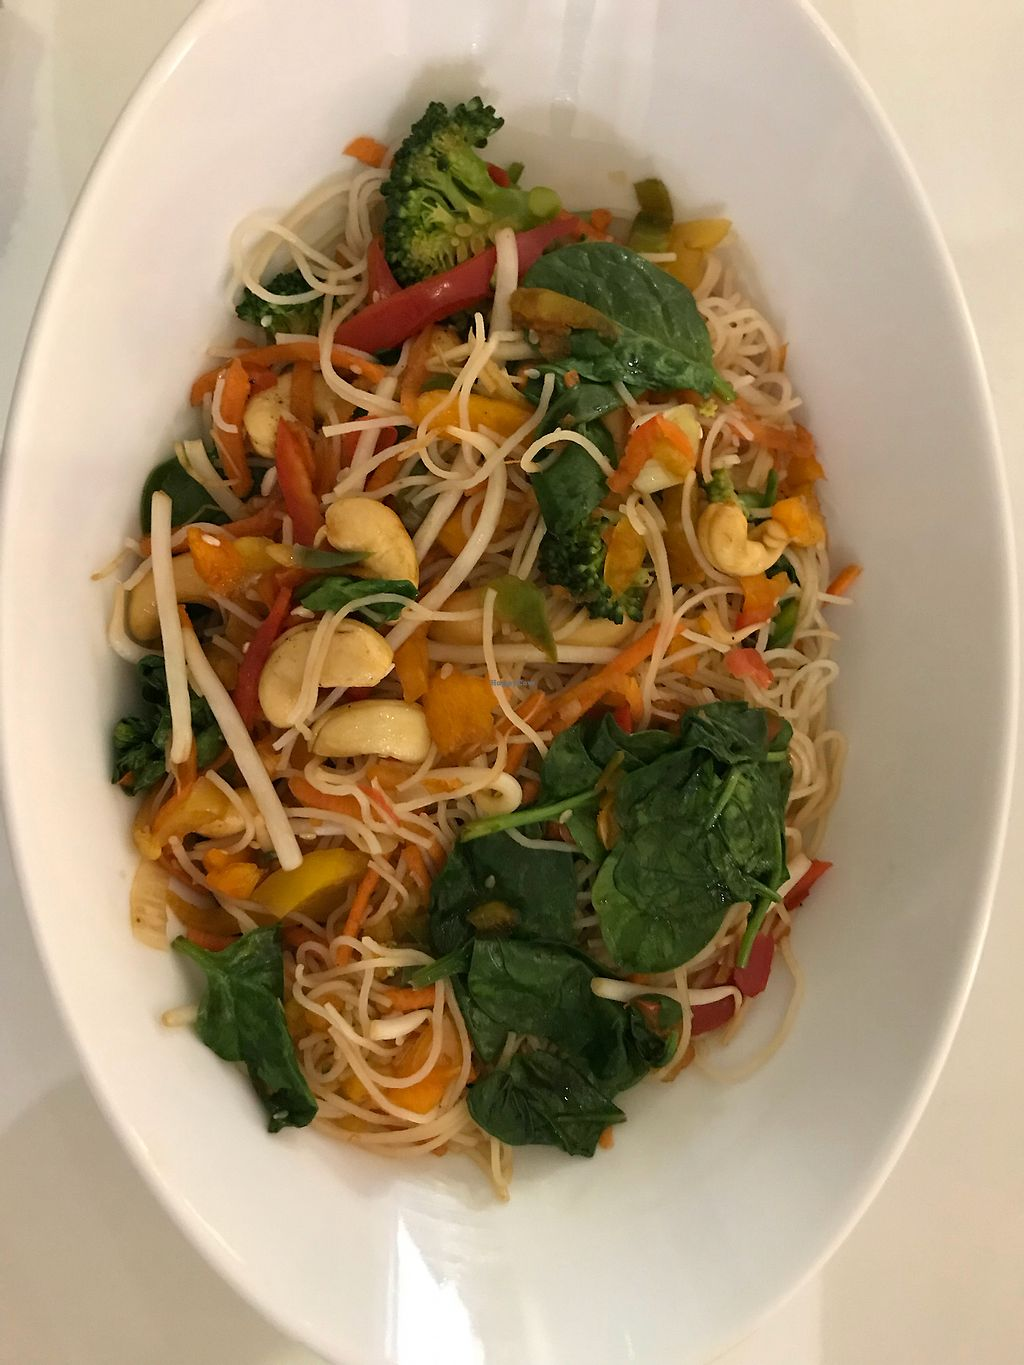 """Photo of Stacked Lunch Bar  by <a href=""""/members/profile/Millie10"""">Millie10</a> <br/>Cashew noodles <br/> January 8, 2018  - <a href='/contact/abuse/image/108778/344259'>Report</a>"""